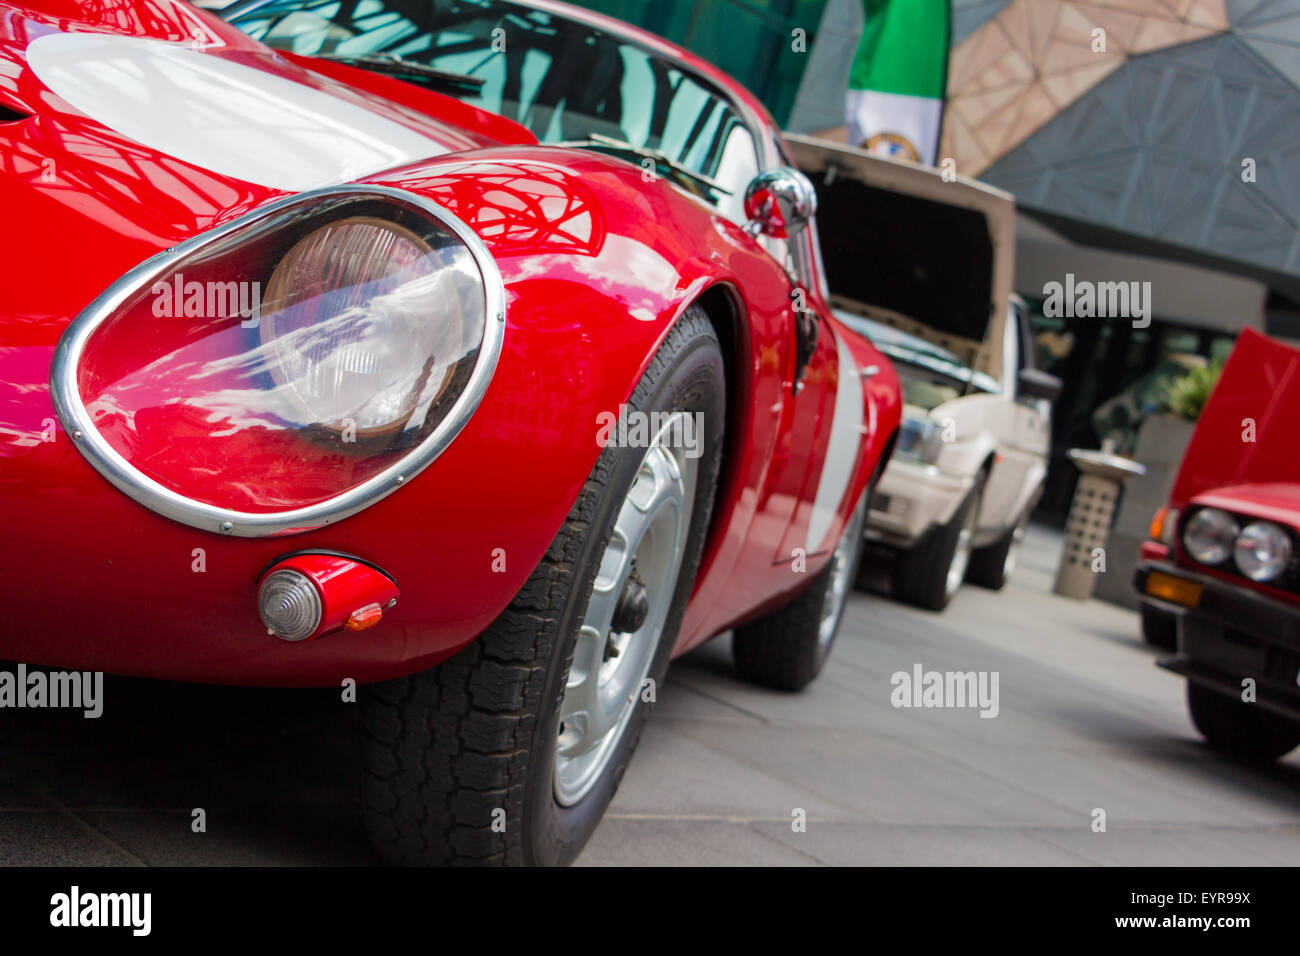 Close up of a red italian sports car at a car show in Melbourne, Australia. - Stock Image